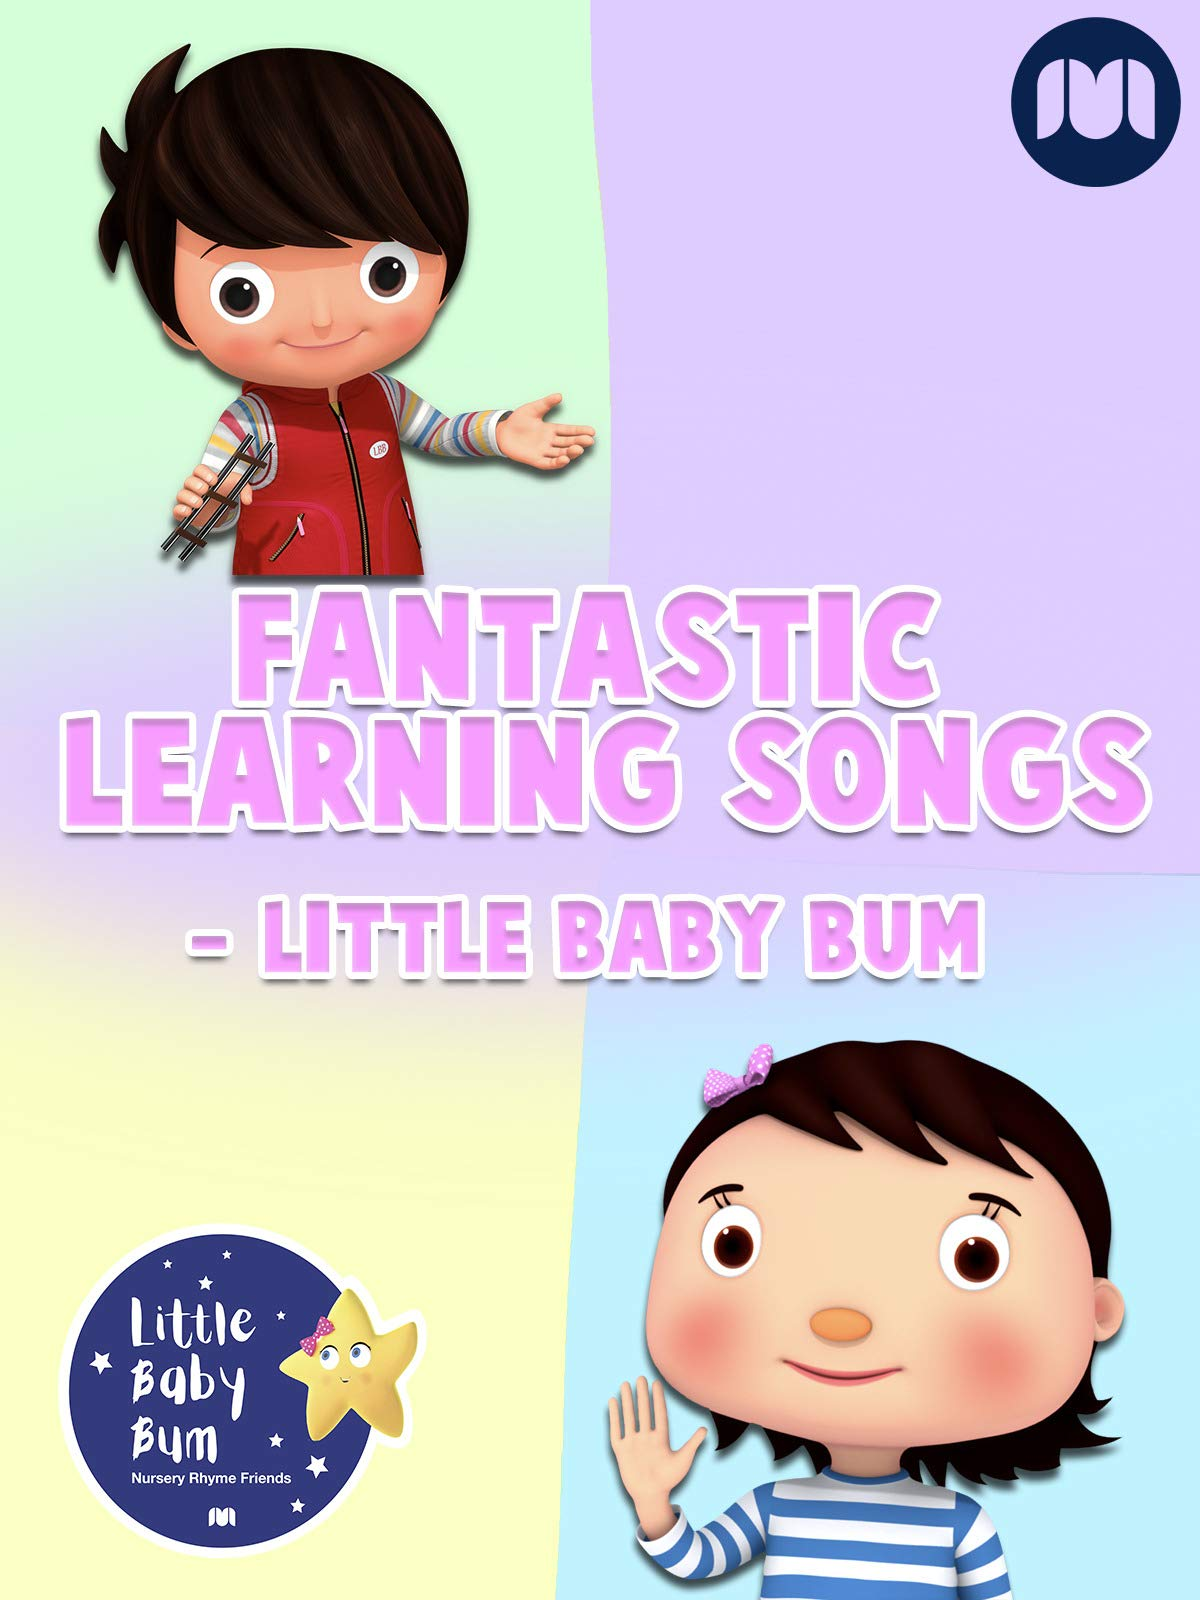 Fantastic Learning Songs - Little Baby Bum